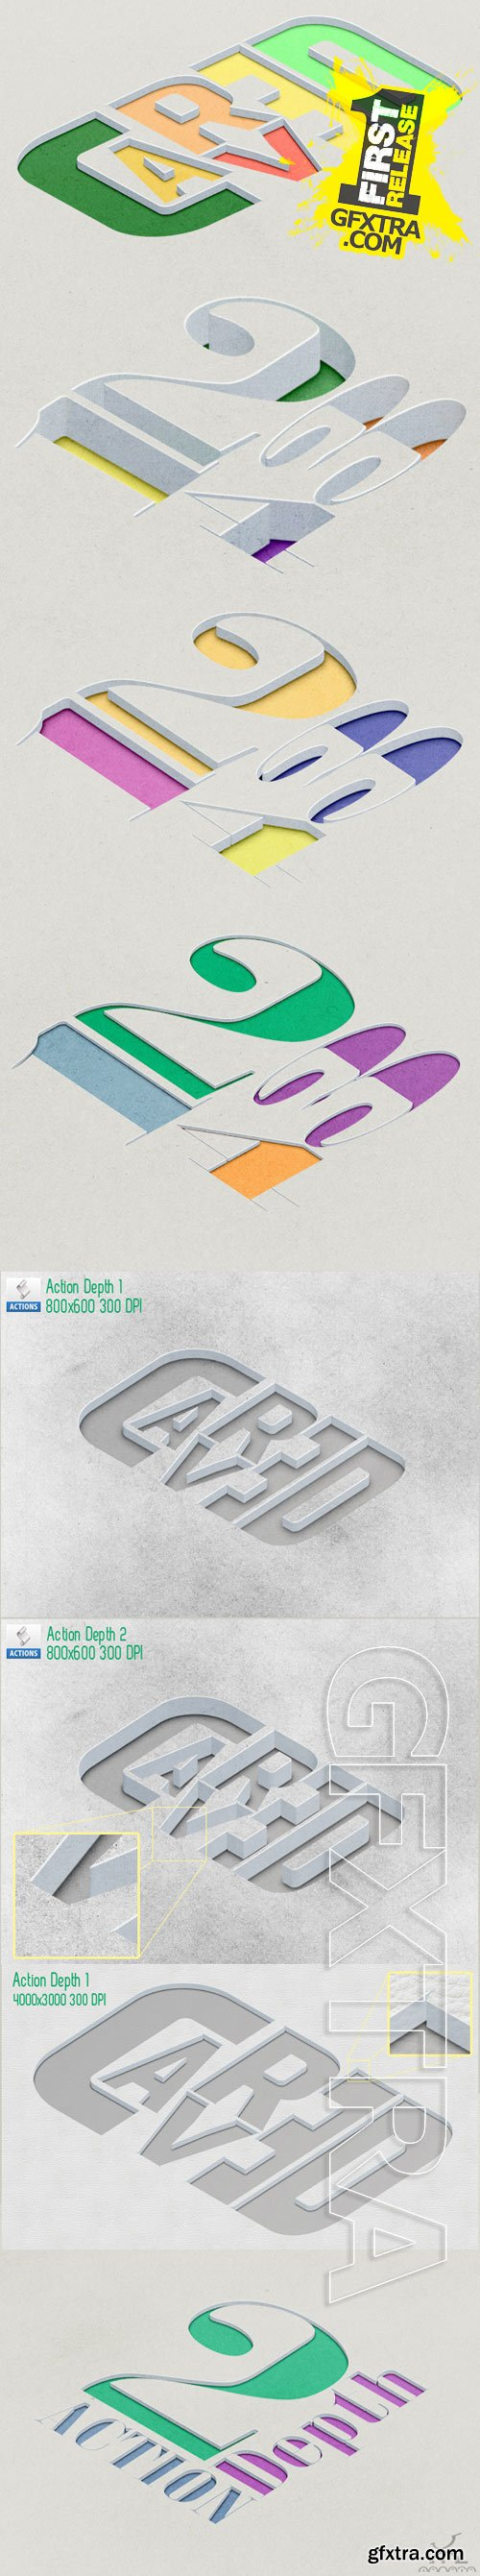 GraphicRiver - Carved in - Text - Shape - Vector Image 9519251